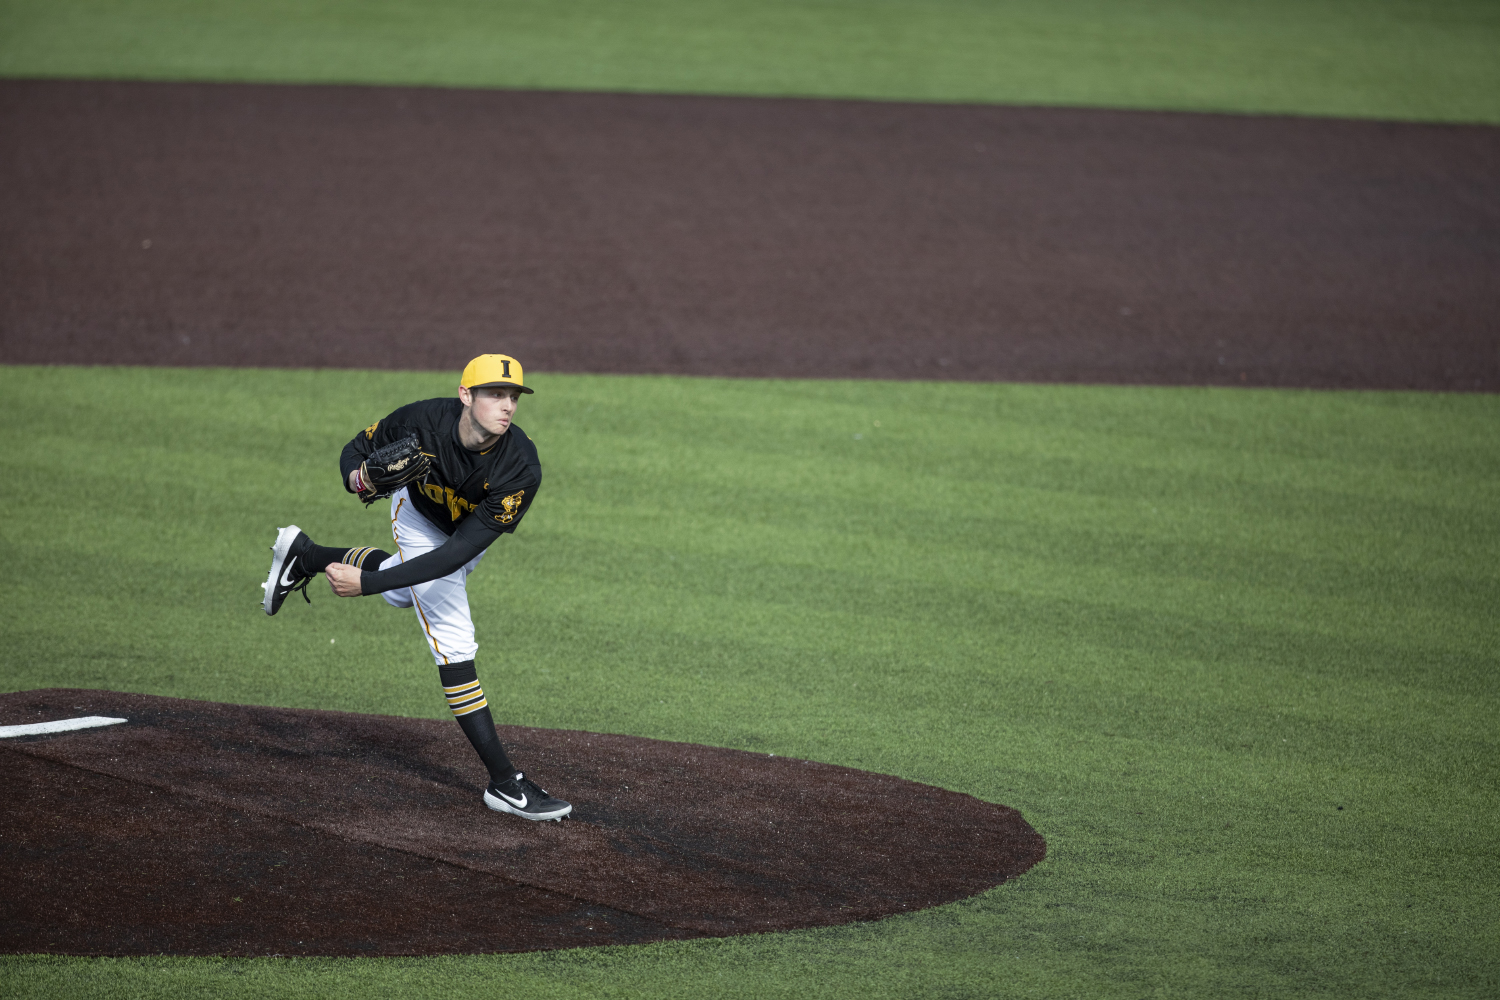 Hawkeye pitcher Trenton Wallace pitches during the baseball game against Illinois at Duane Banks Field on March 30, 2019. The Hawkeyes defeated the Fighting Illini 2-1 after the 9th inning.